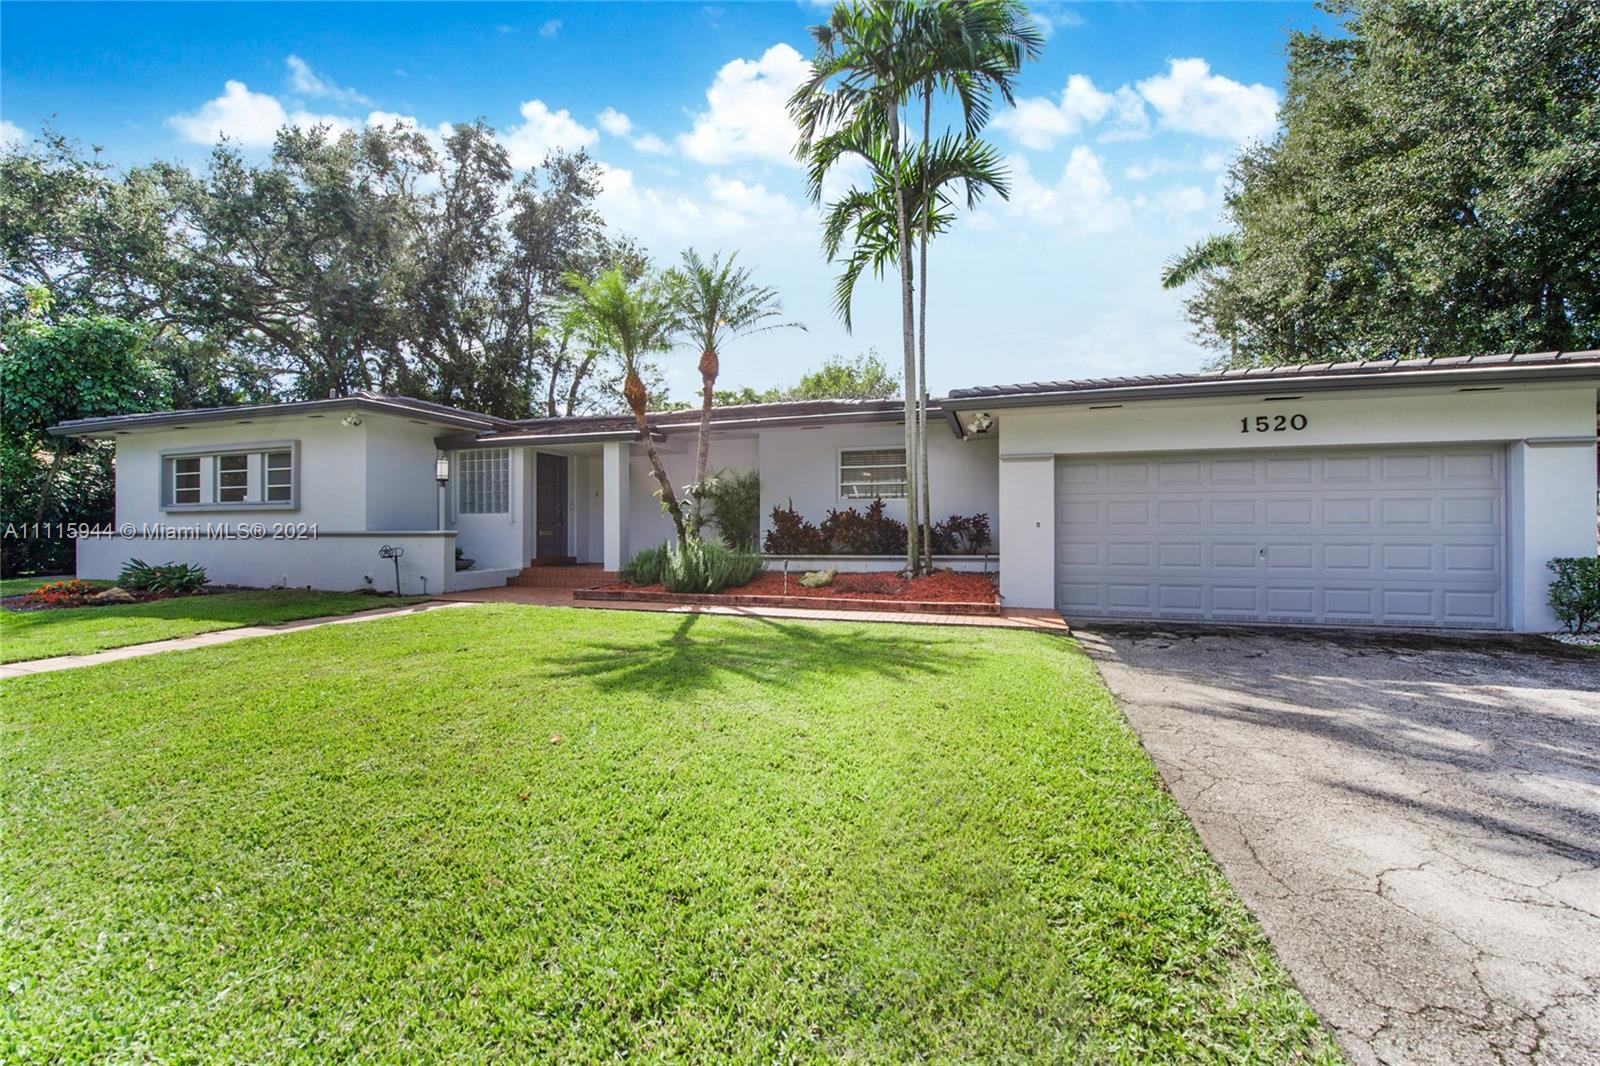 Single Family Home,For Sale,1520 Miller Rd, Coral Gables, Florida 33146,Brickell,realty,broker,condos near me